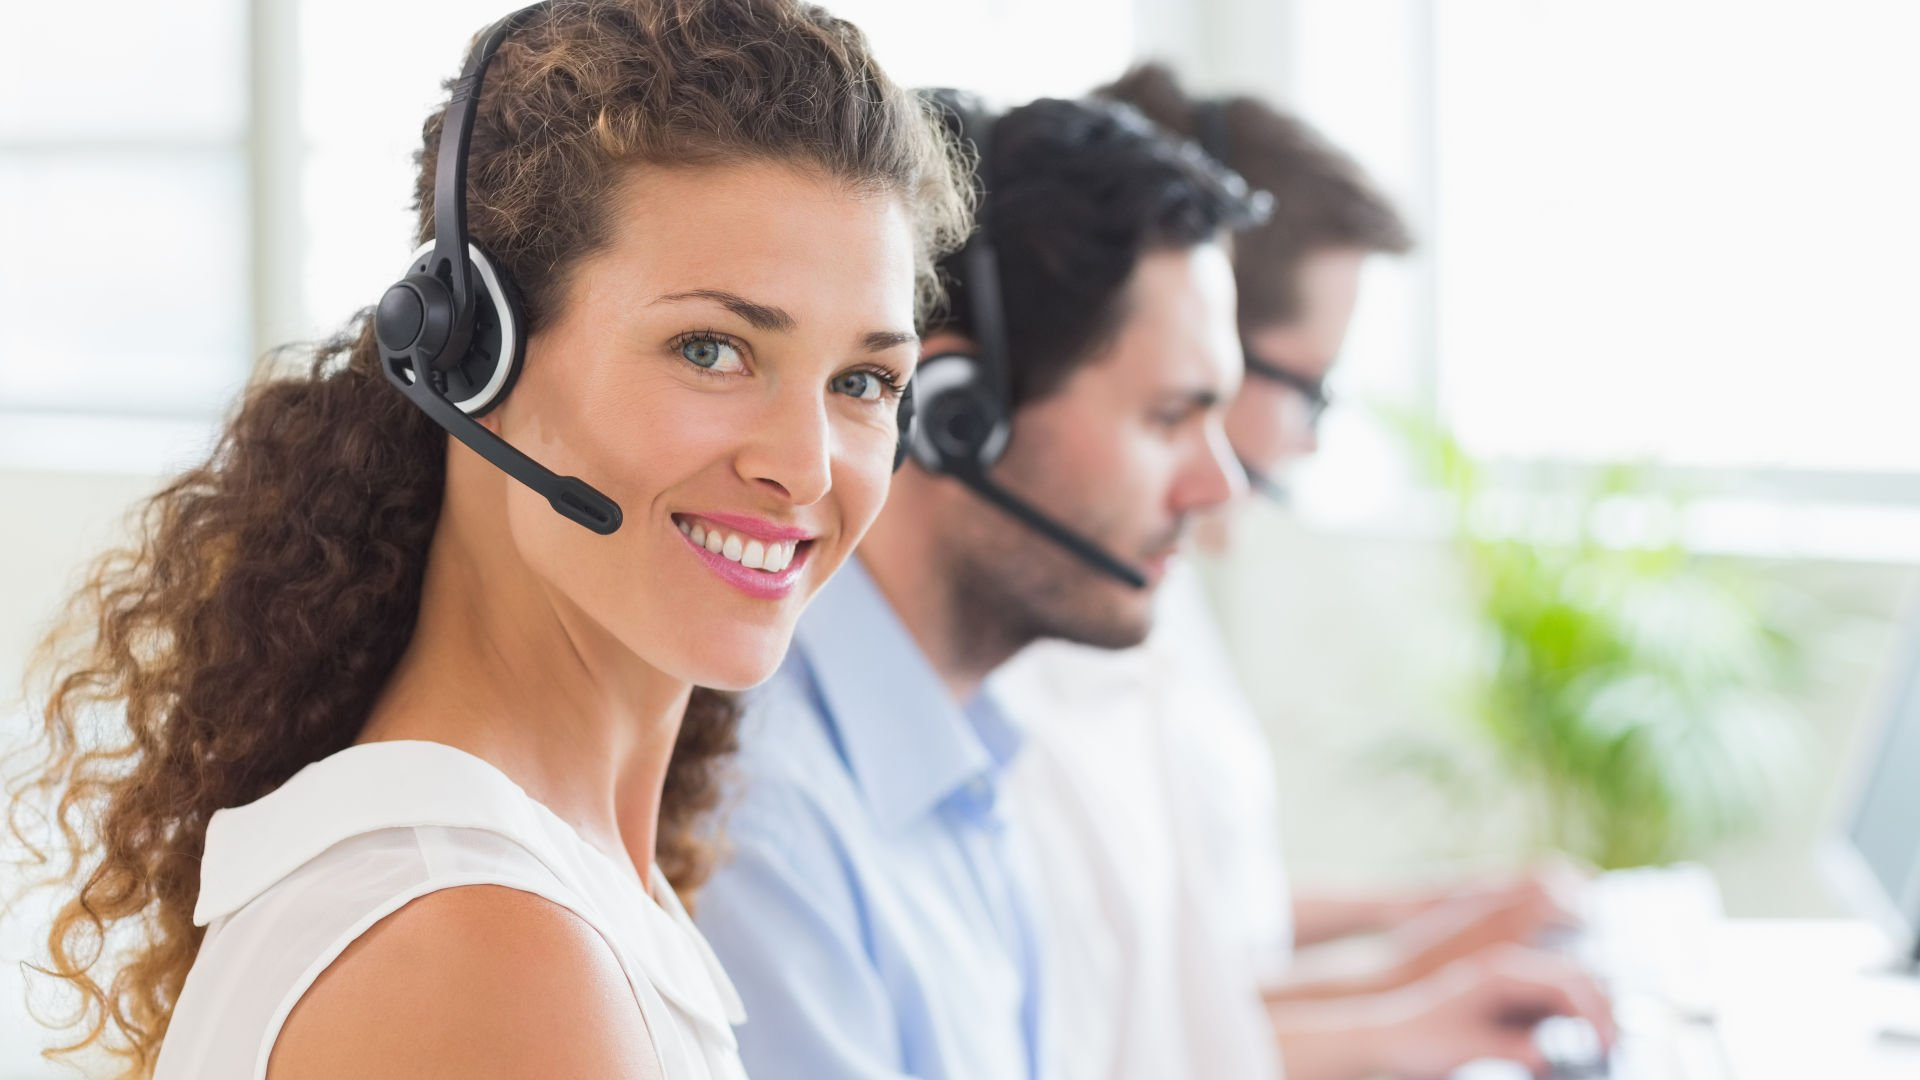 Setera partners with Altigen to provide Contact Centre services natively integrated with Microsoft Teams